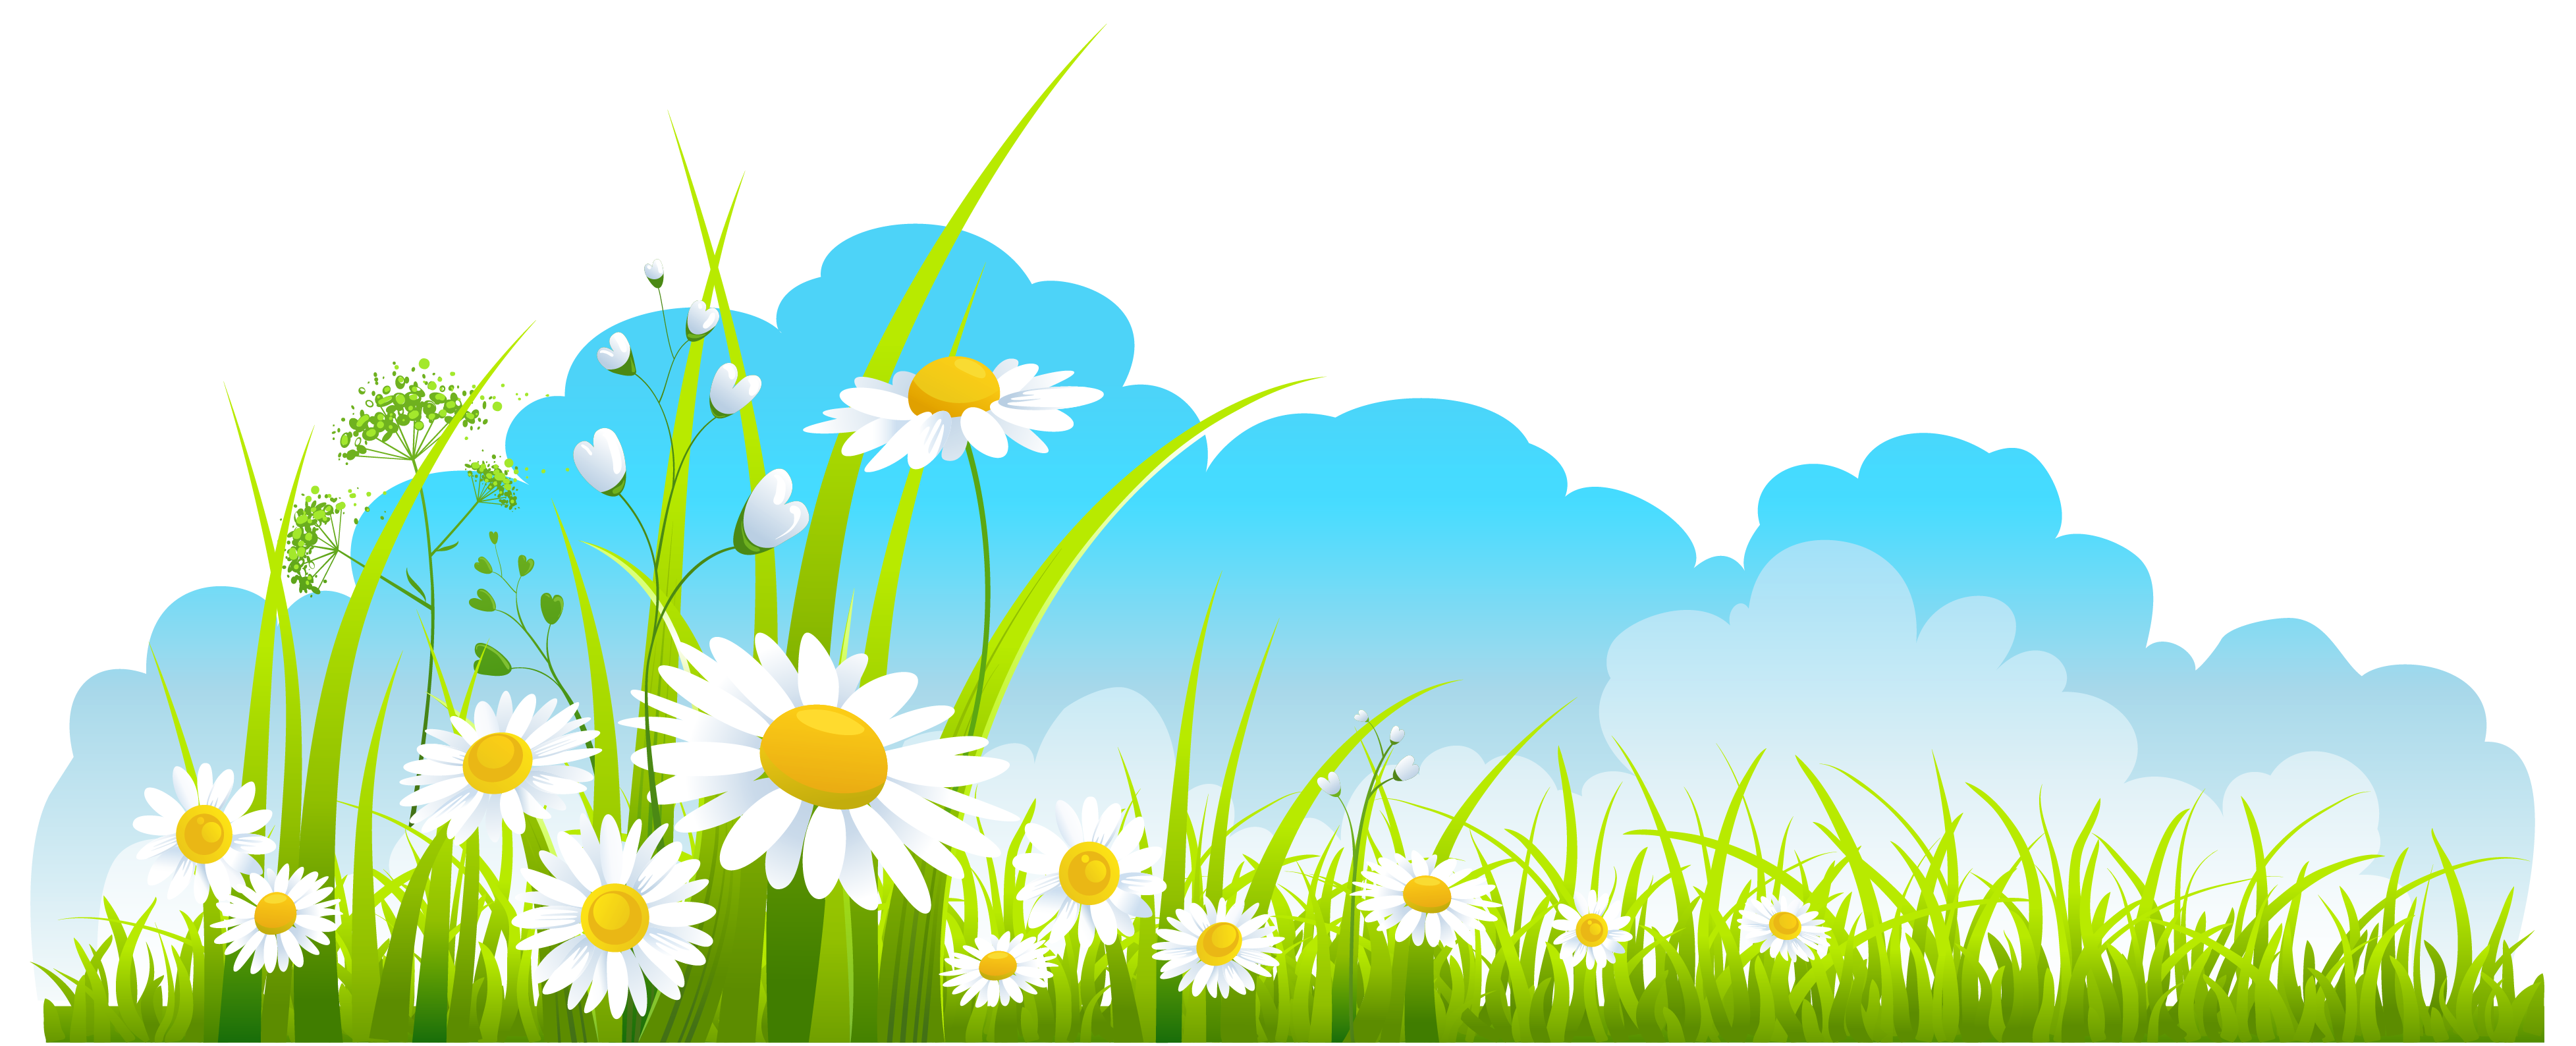 Spring clipart #2, Download drawings